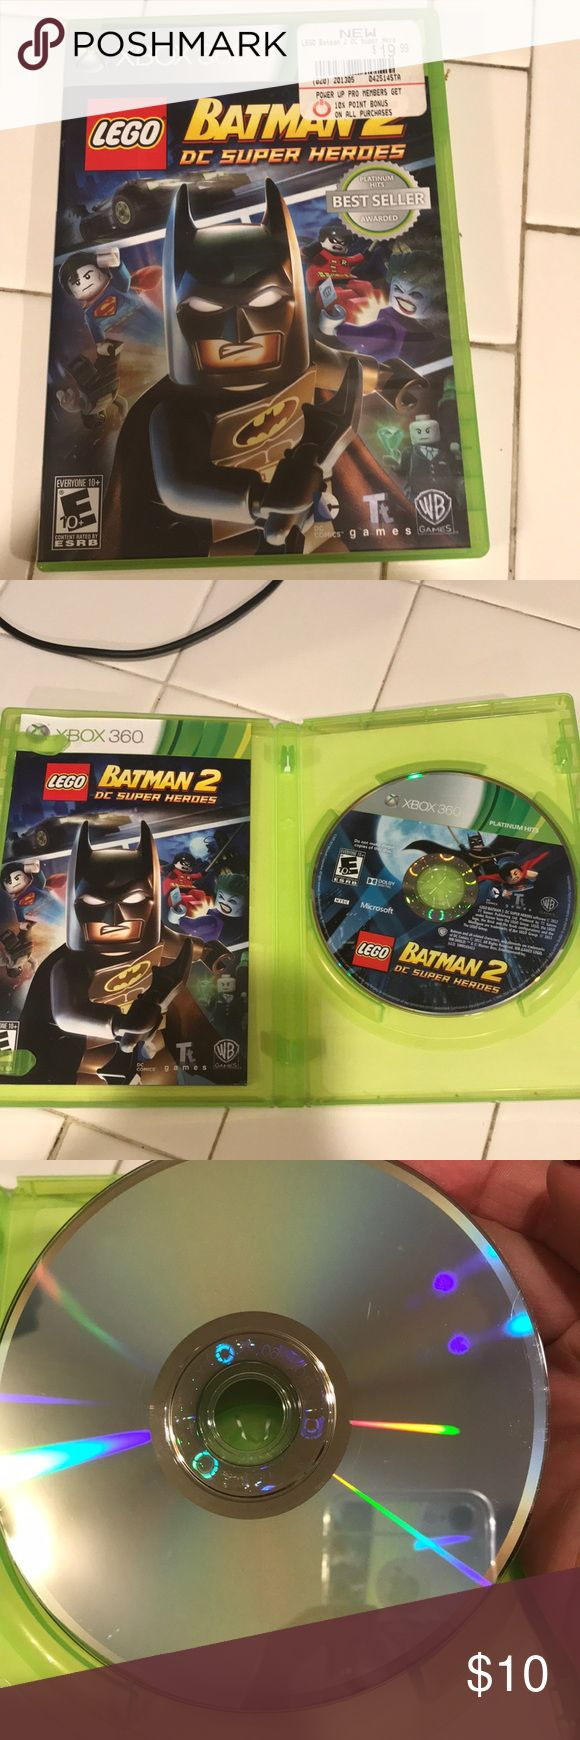 Xbox 360 game Used XBox 360 Lego Batman 2 DC Super Heroes game. Perfect condition!! WB Other